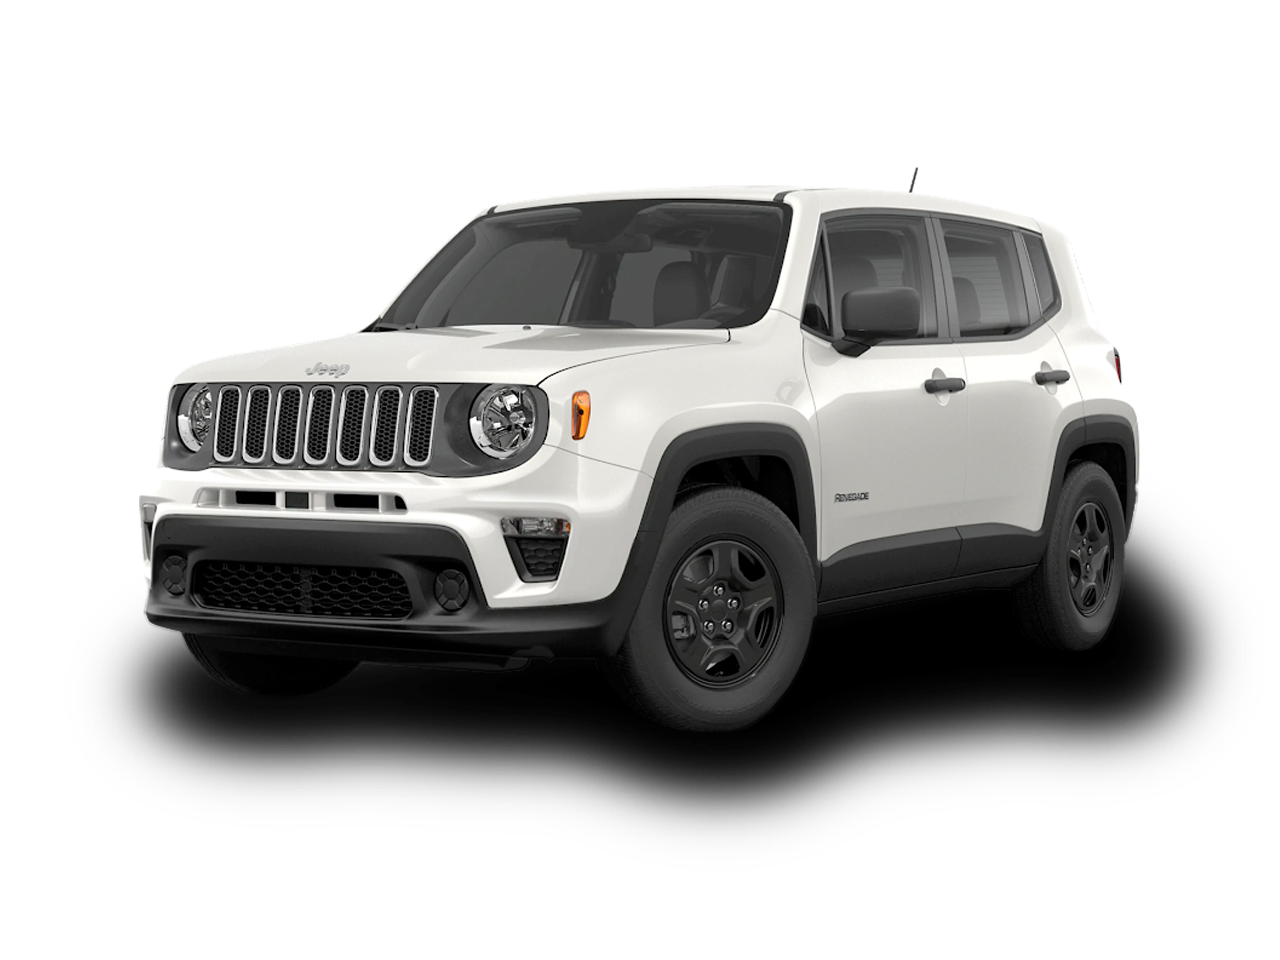 Test Drive a 2019 Jeep Renegade at Michigan City Chrysler Dodge Jeep RAM in South Bend, IN